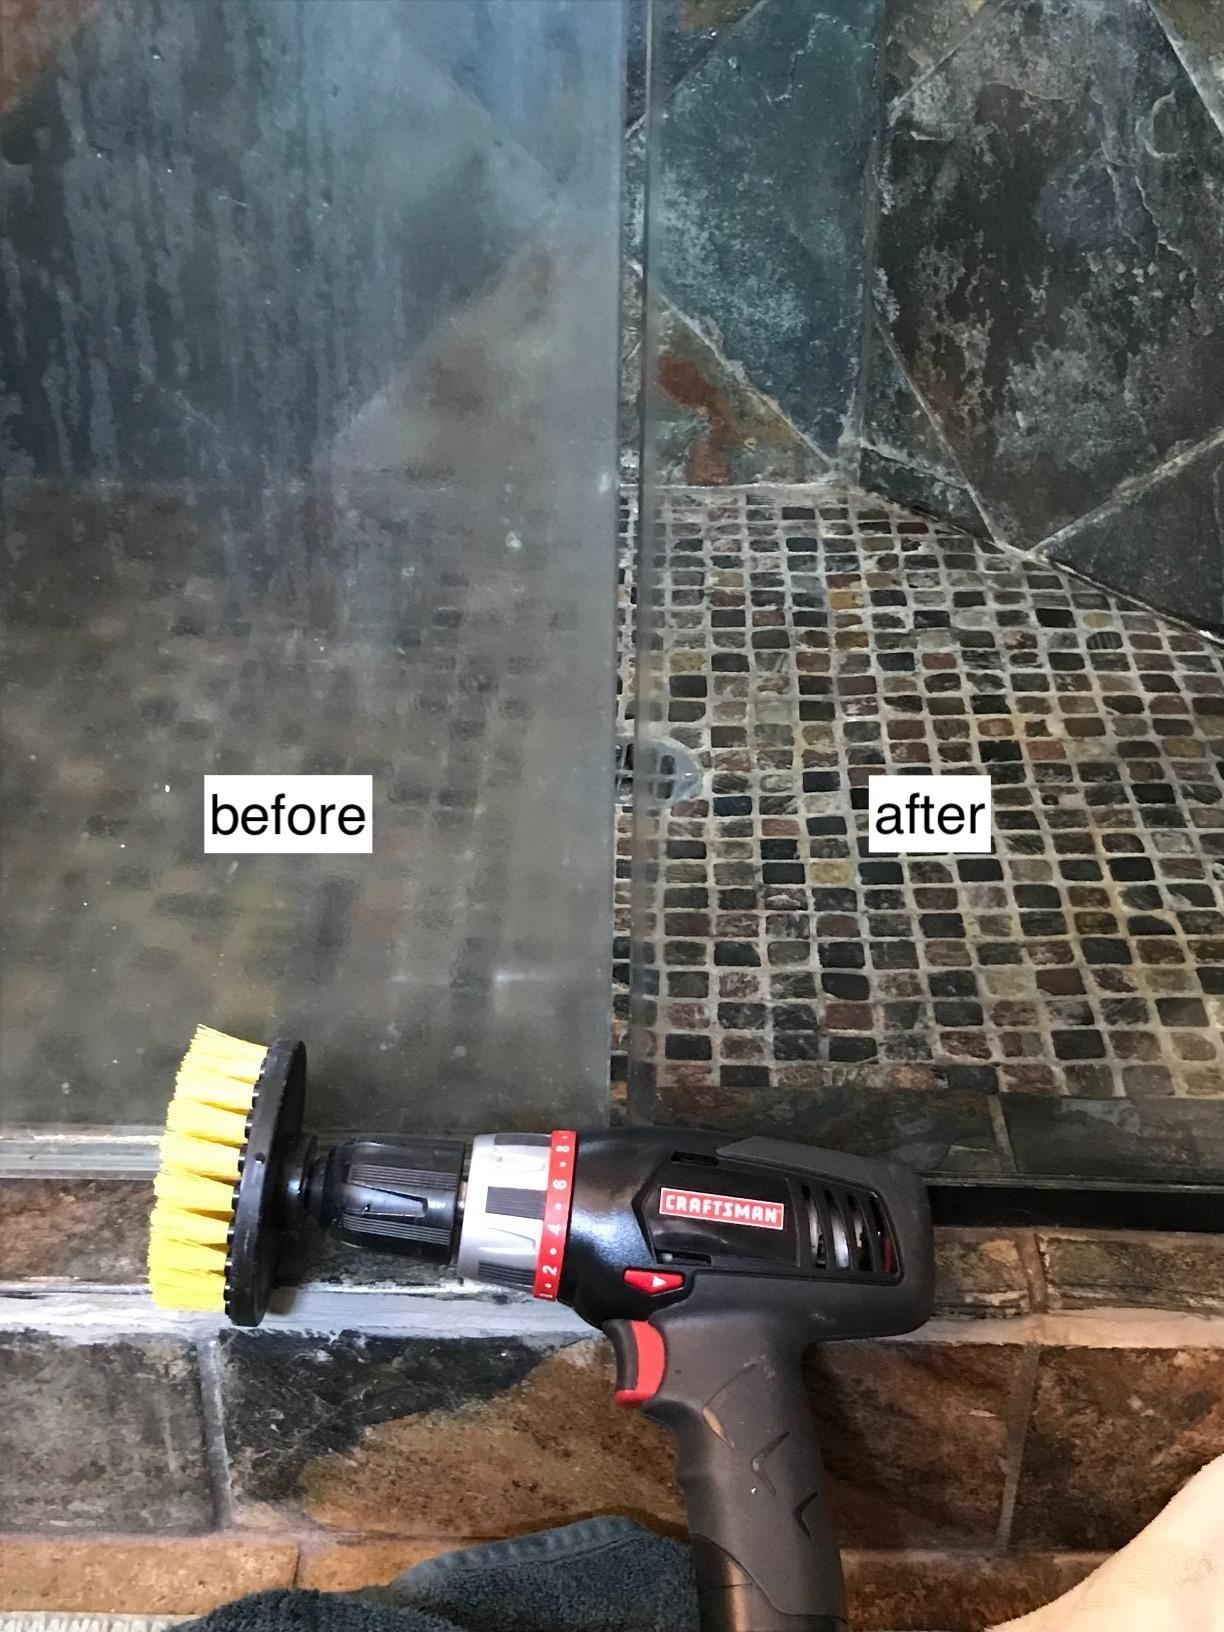 A bristled round brush attached to a drill next to a before and after of a smogged up and clean shower door